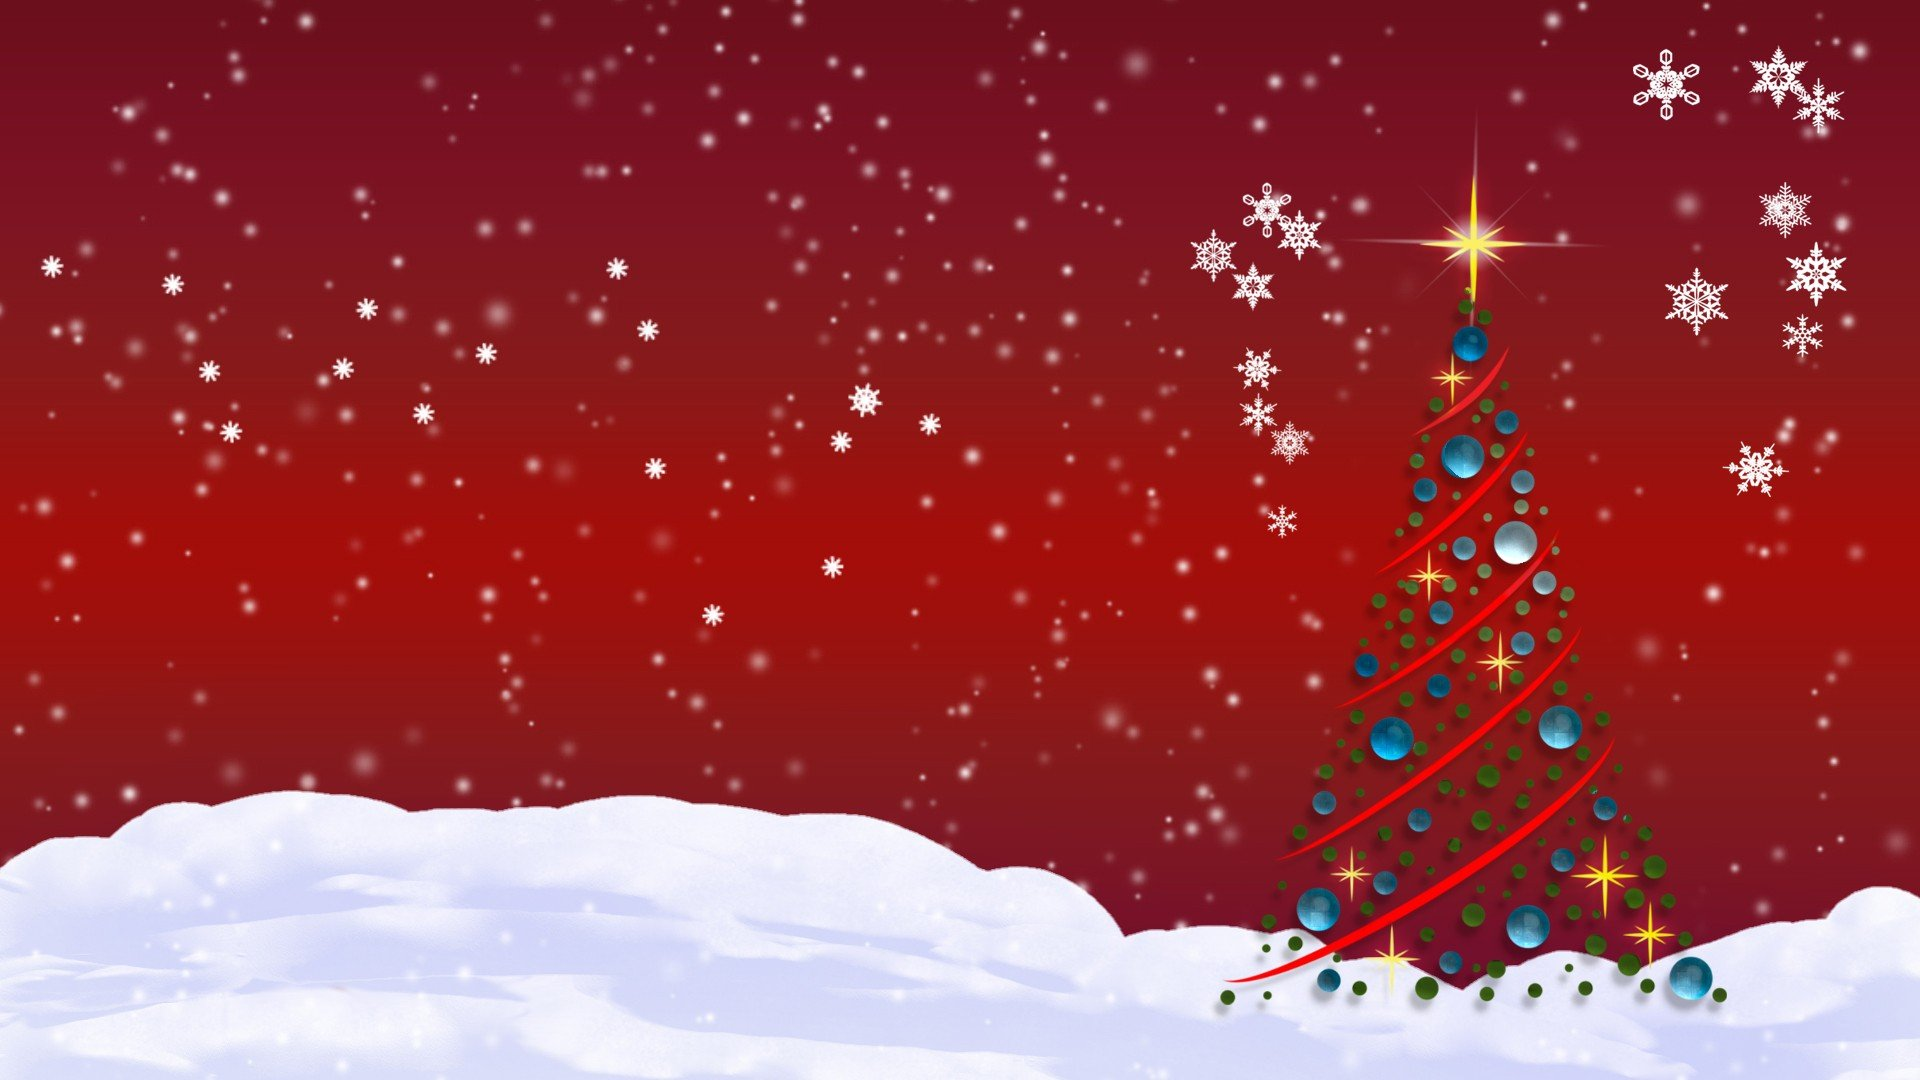 Christmas Wallpapers And Screensavers For Mac 1920x1080